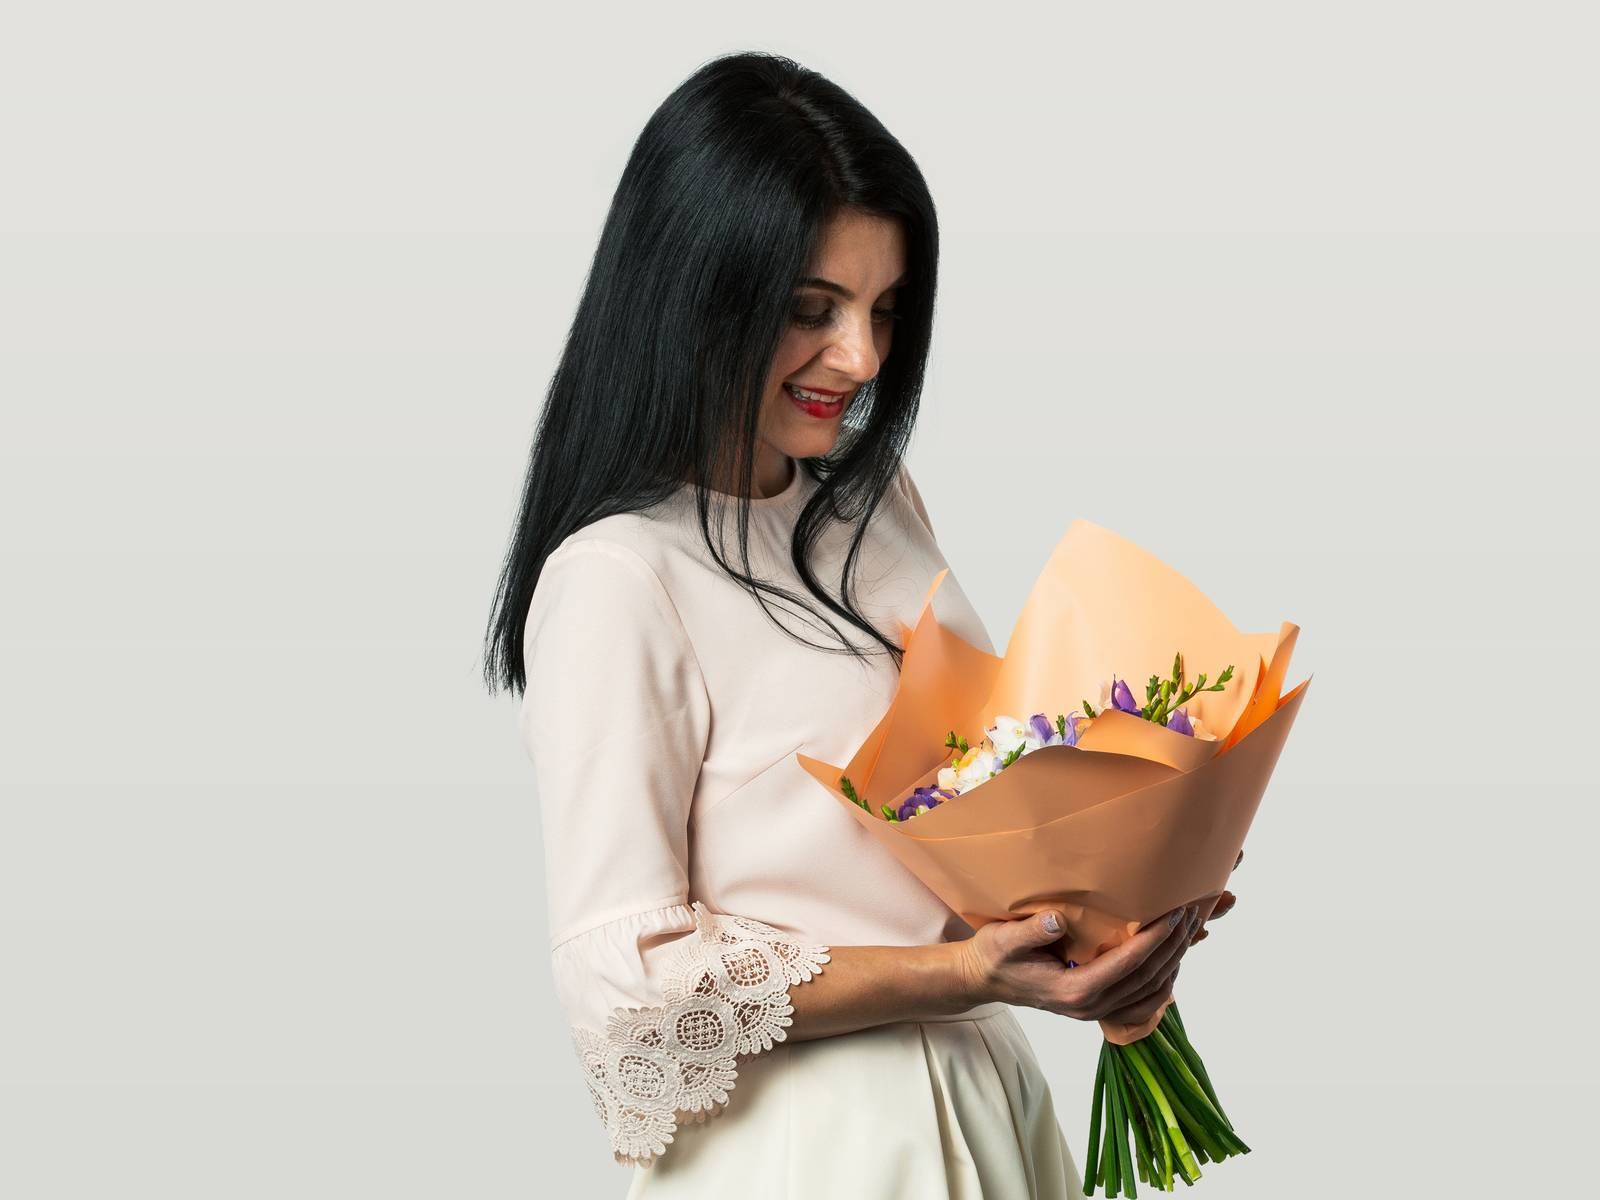 Maria holding a bunch of flowers